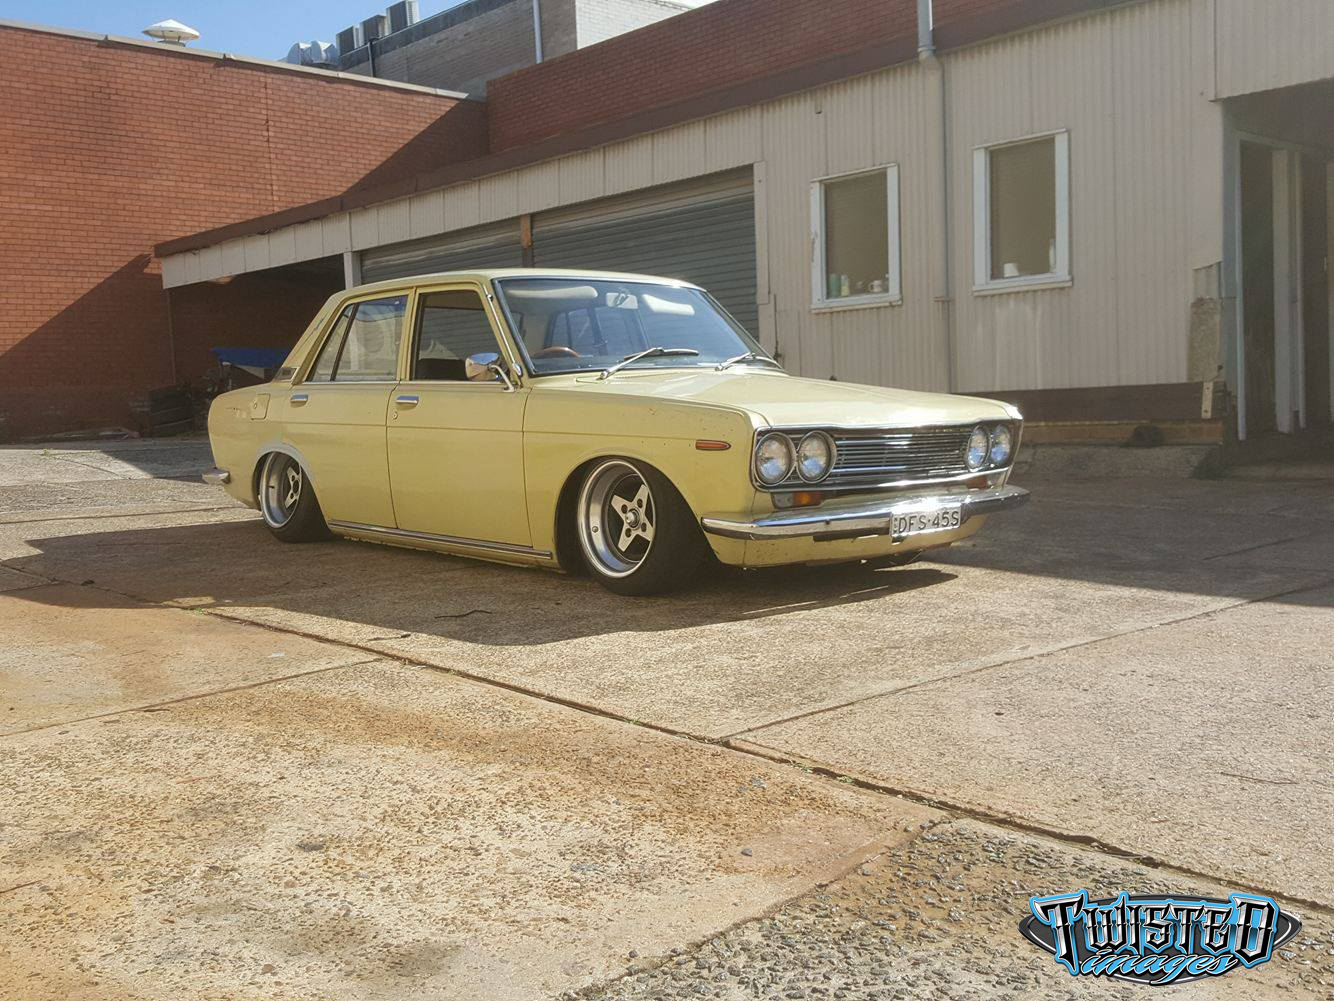 Datsun 510 Wiring Harness Change Your Idea With Diagram Specialties Sr20det Review Stage 2 Air Suspension System 68 73 Sedan Rh Twistedimages Com 210